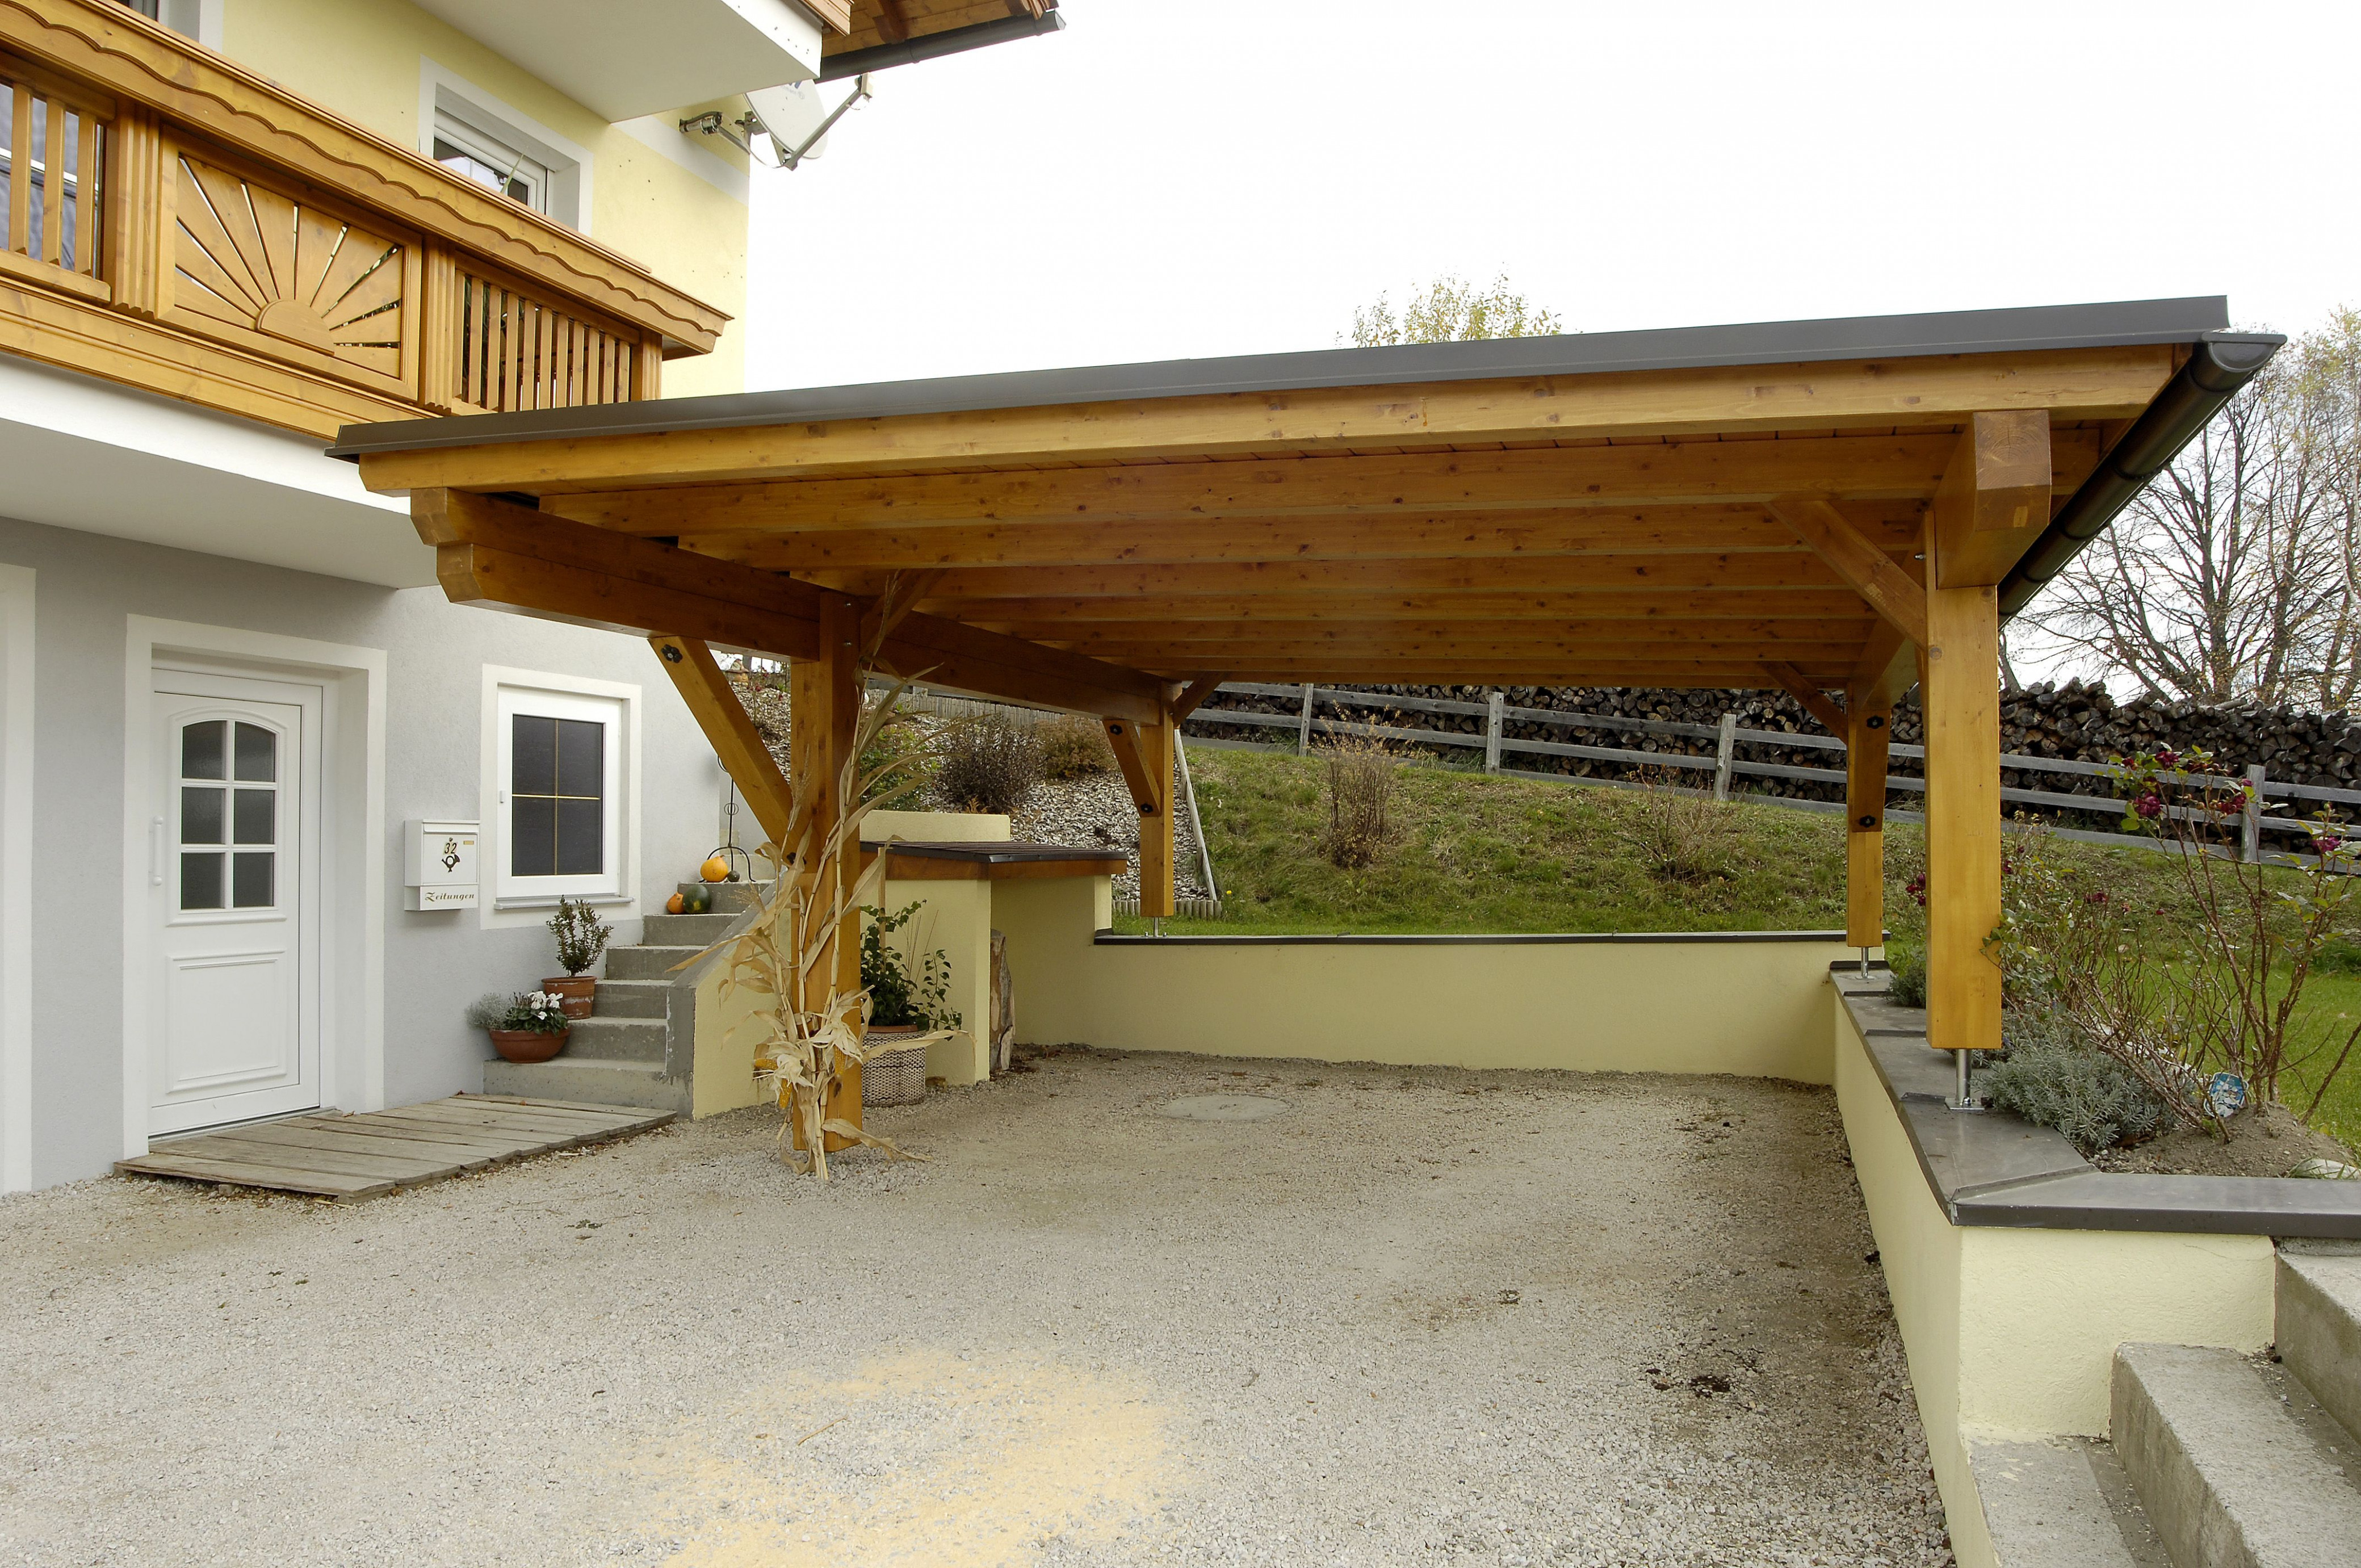 The Frame Of This Carport Is A Wooden Material That Cover ..